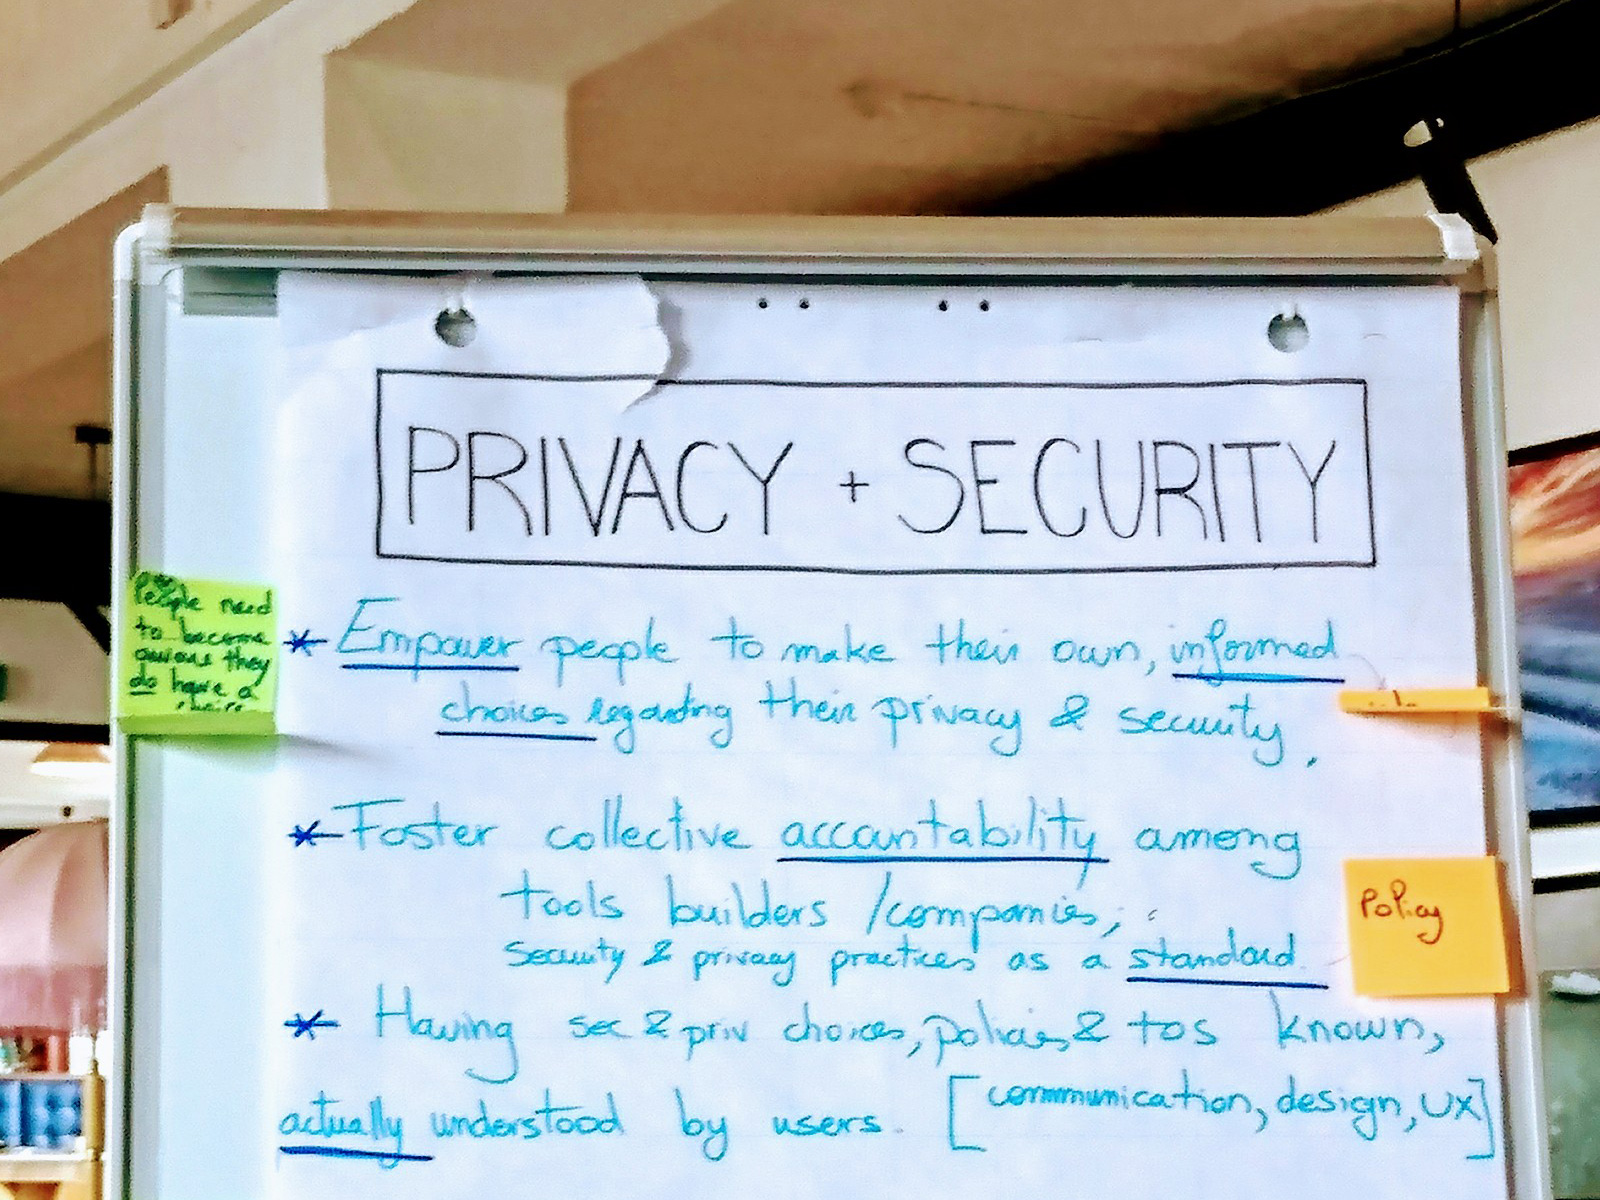 A photograph of part of a newsprint chart. The title reads 'PRIVACY + SECURITY', it is written in black and is outlined by a rectangle. There are 3 points written in a bright light blue text with, the keywords are underlined in dark blue.